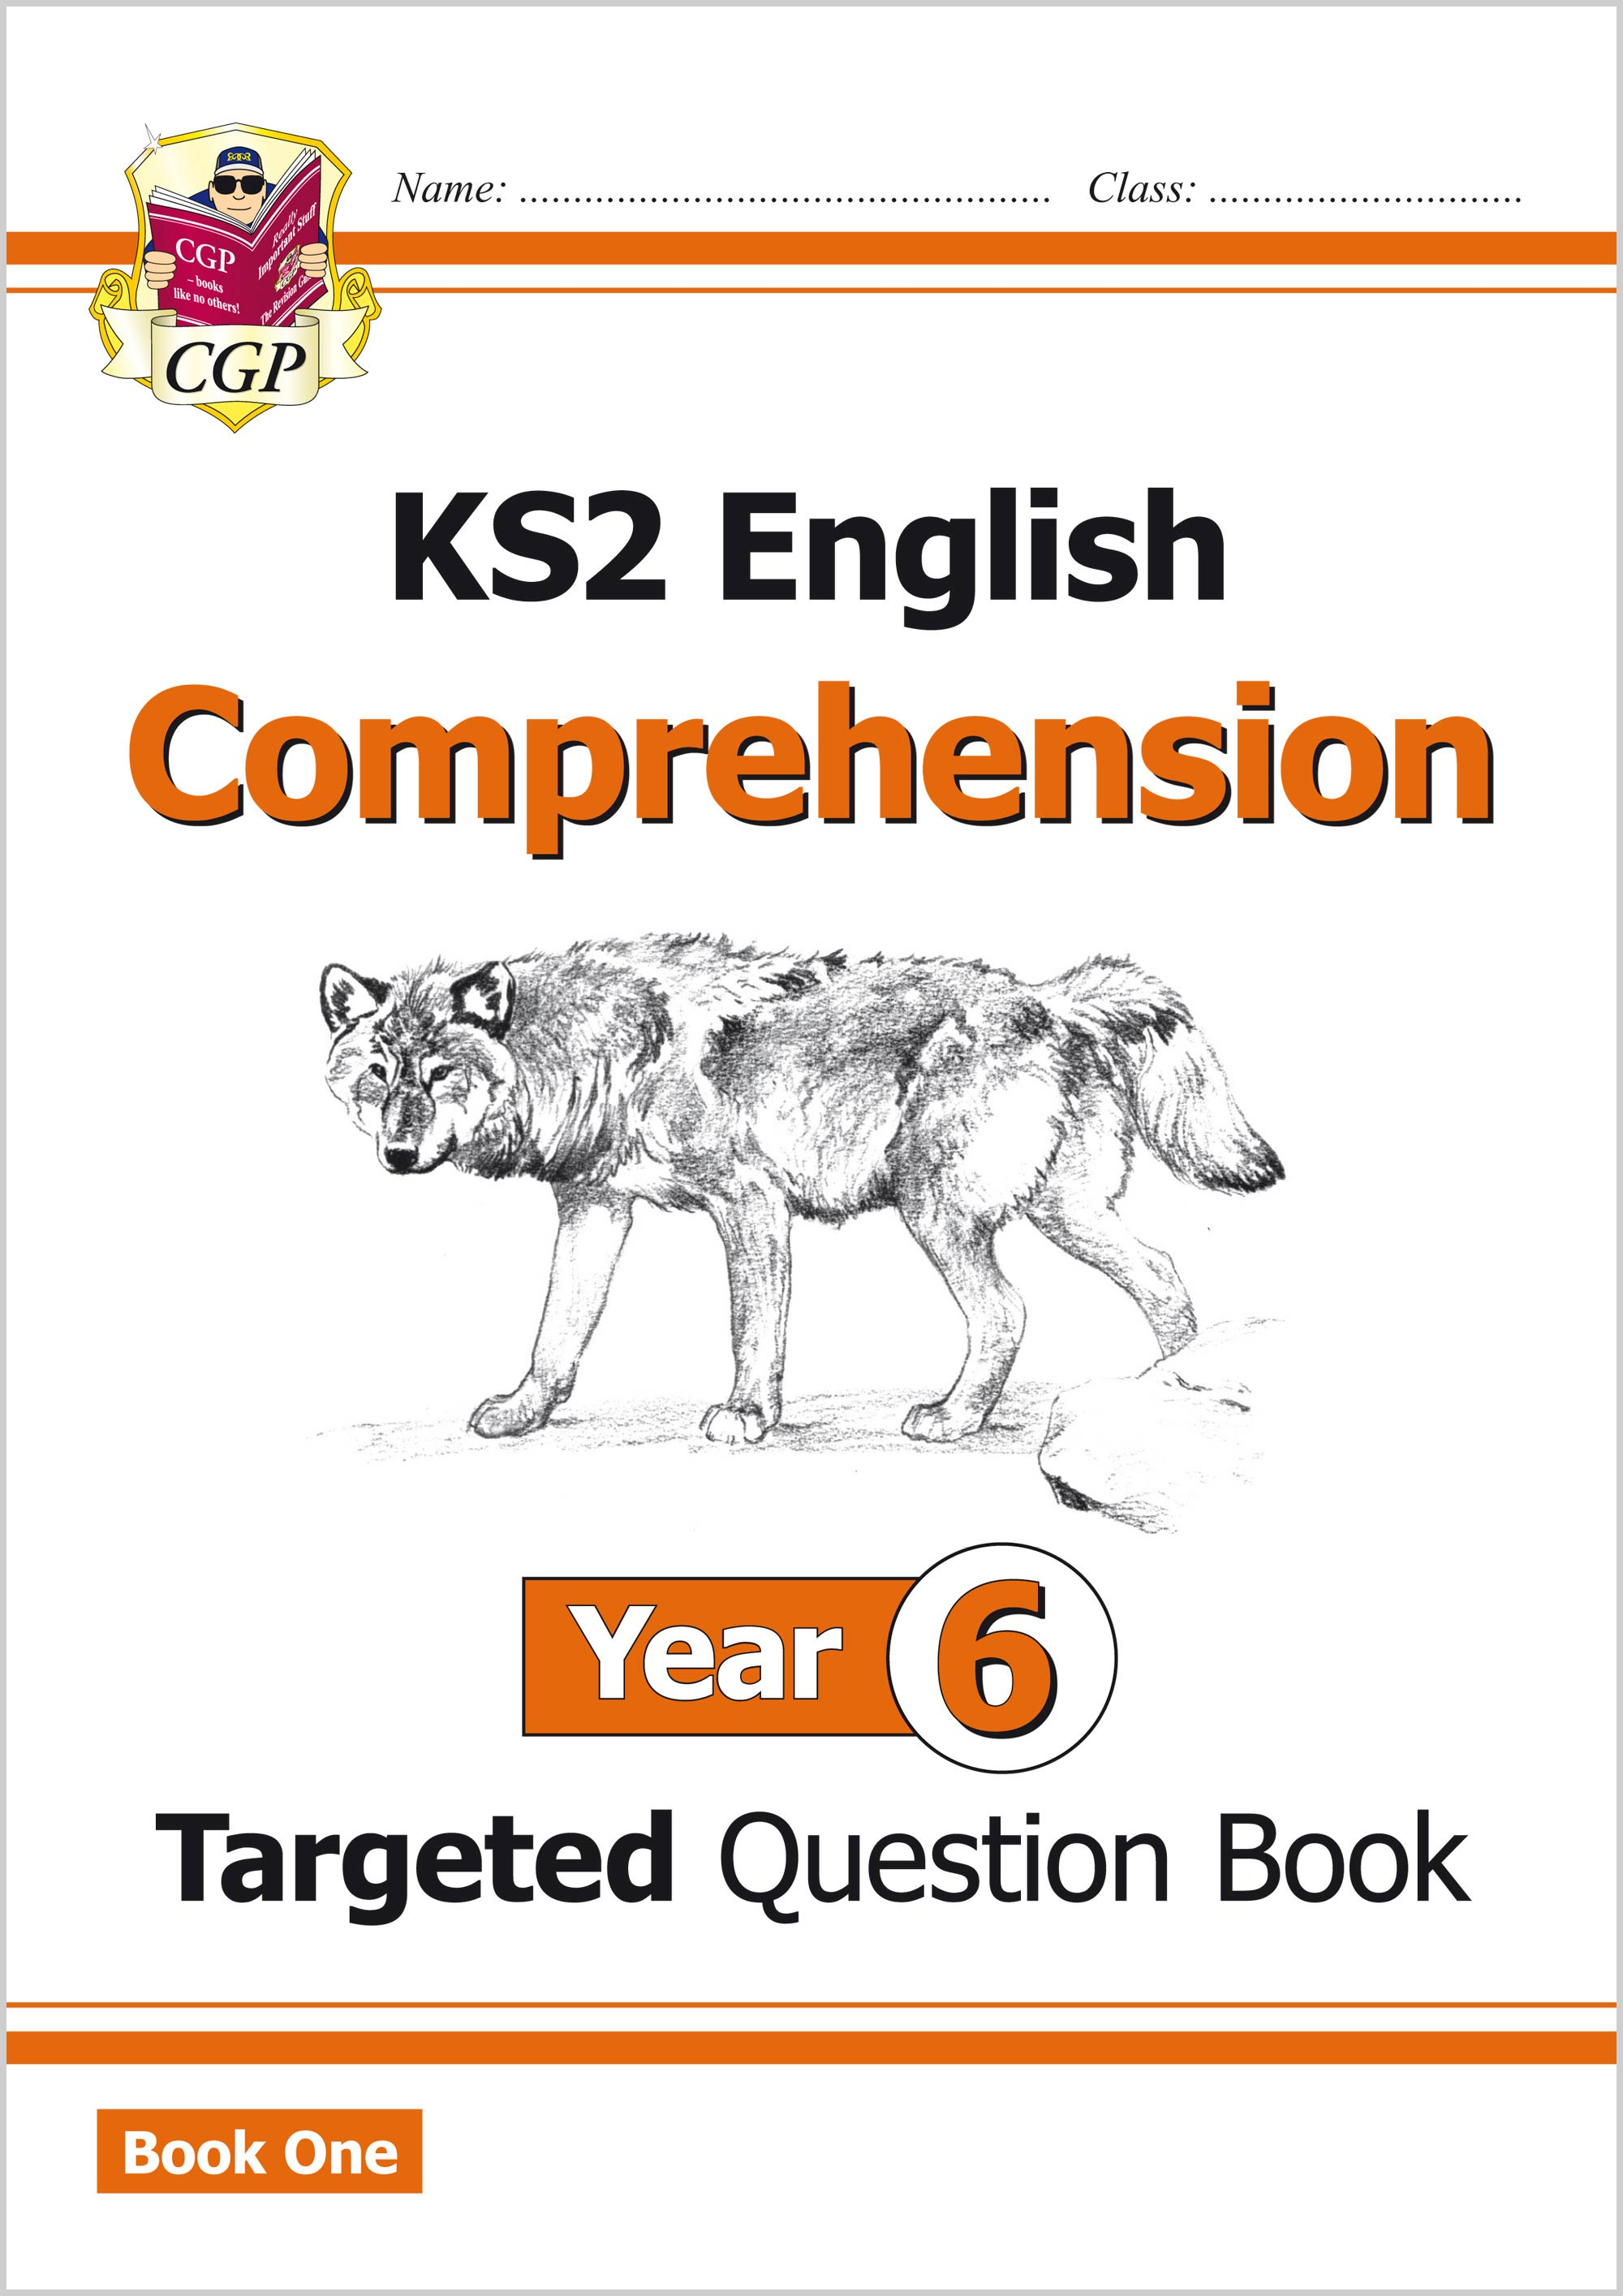 E6CW21 - KS2 English Targeted Question Book: Year 6 Comprehension - Book 1